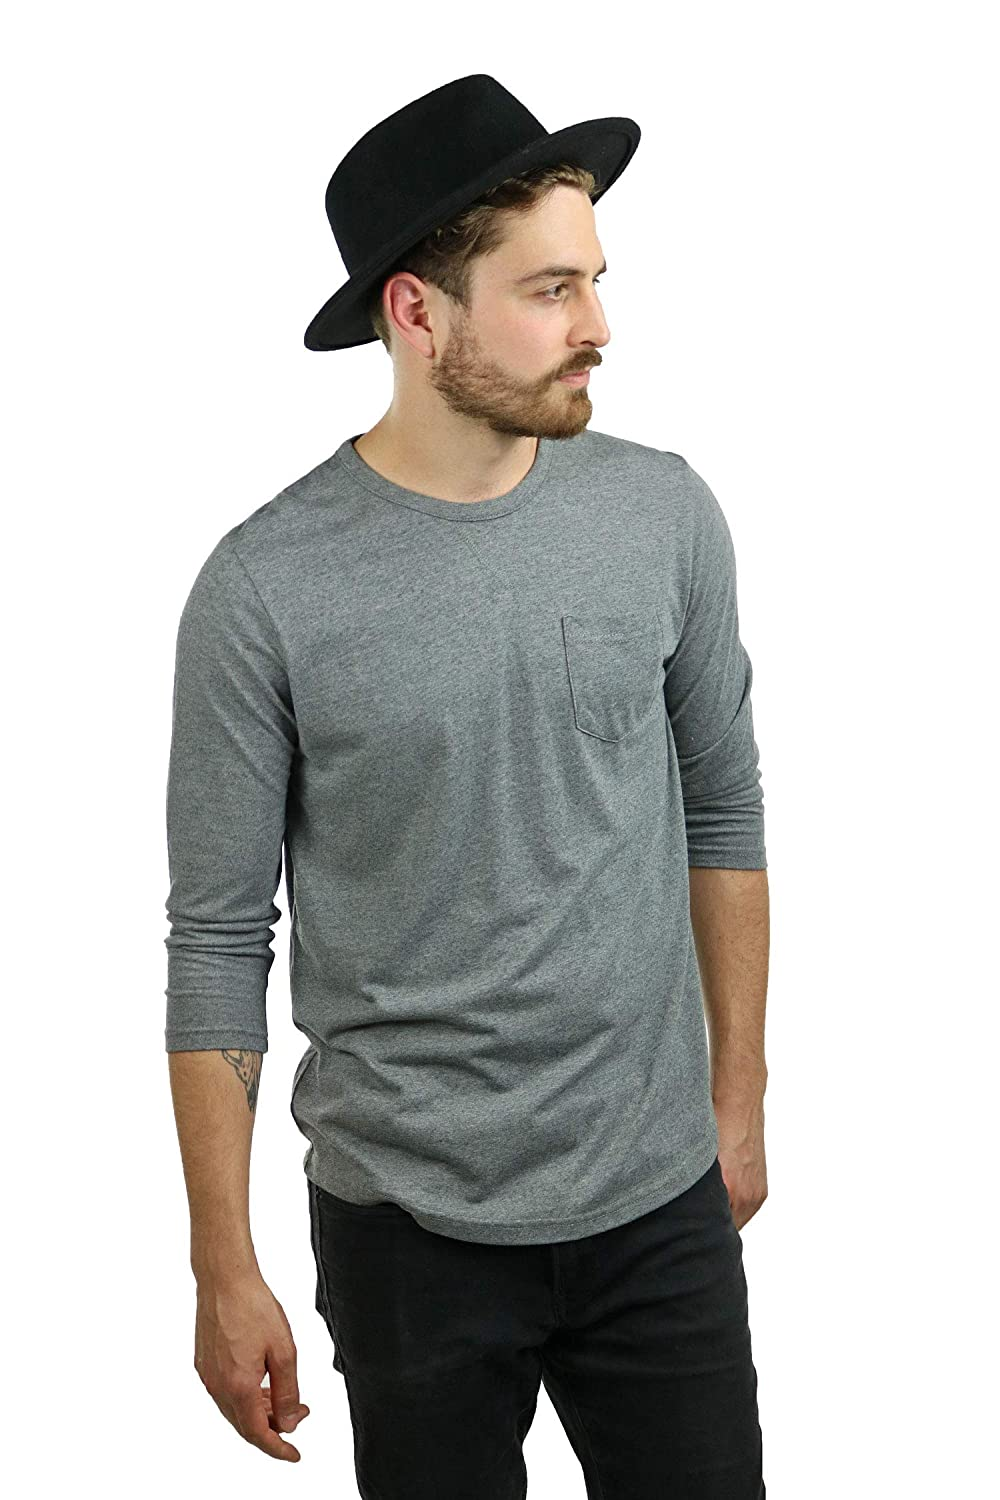 8709a955b99 Fedora Hats for Men by King   Fifth